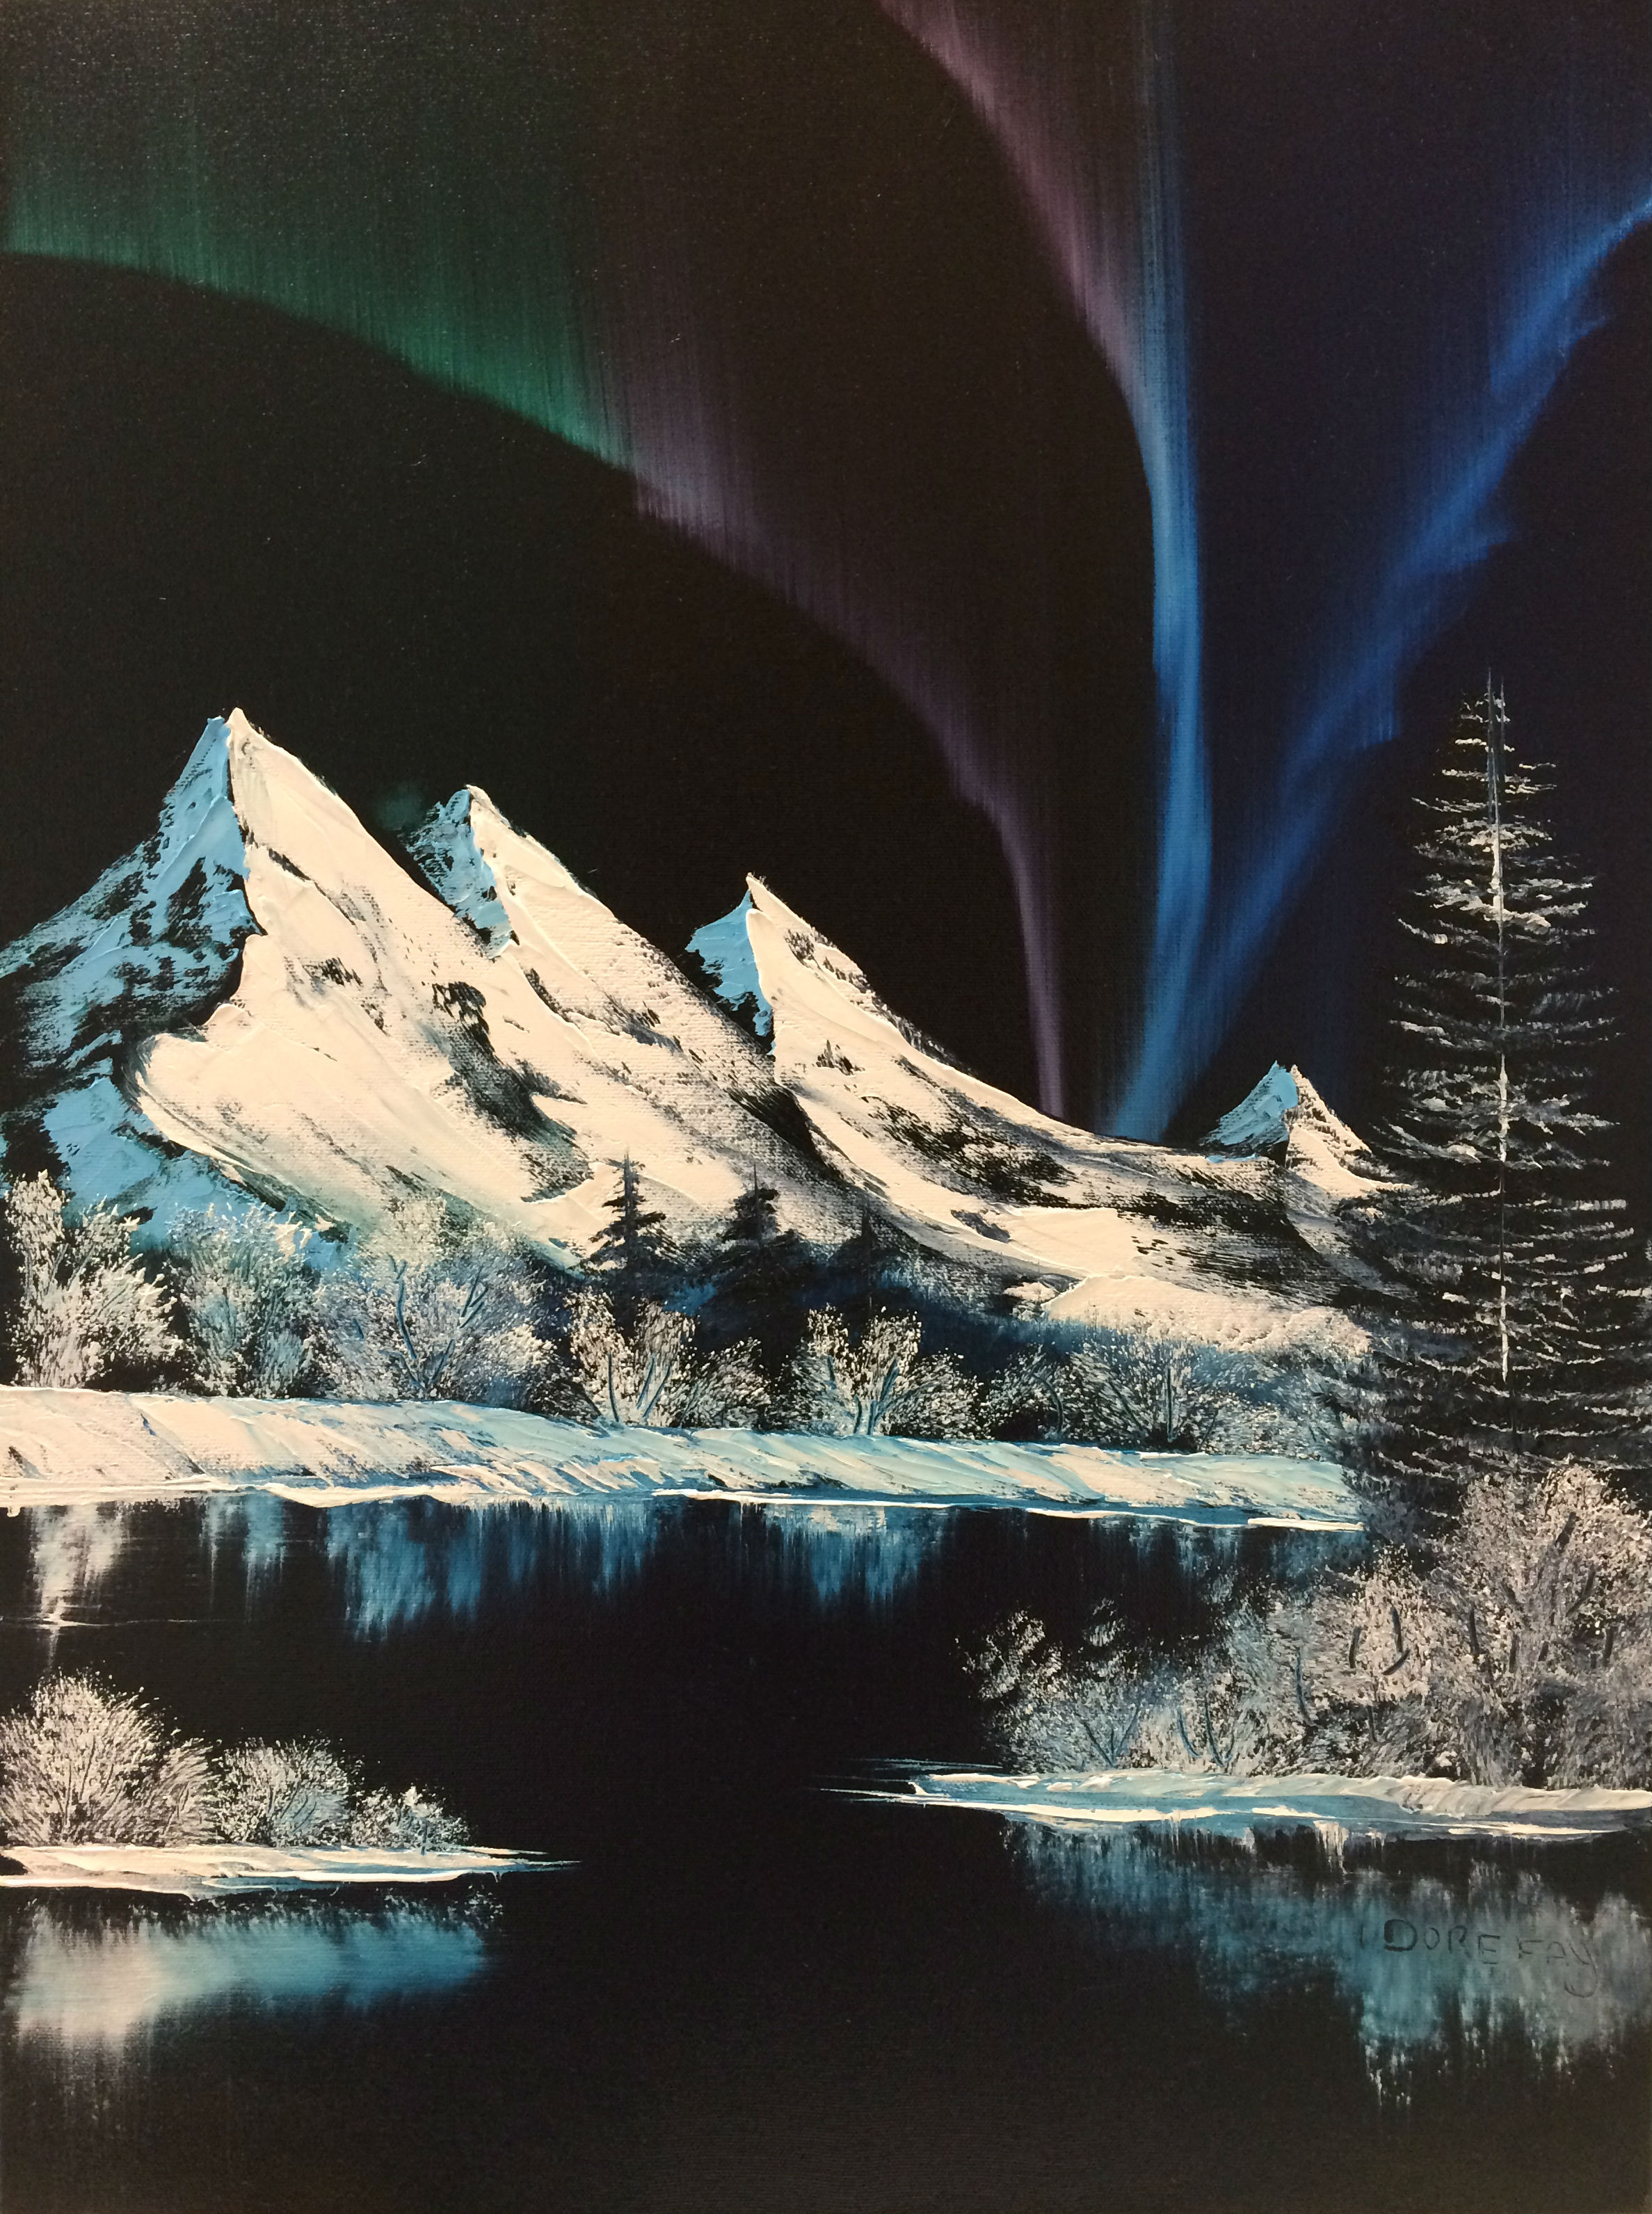 """This jaw dropping Bob Ross painting titled """"Northern Lights"""" is from Season 8 of his PBS series """"The Joy of Painting"""". This is a beautiful and fun painting to paint! From snow-covered mountains under the northern lights to the frozen lake! You can choose to do this with or without the cabin! This is probably the most widely known and sought after painting!"""